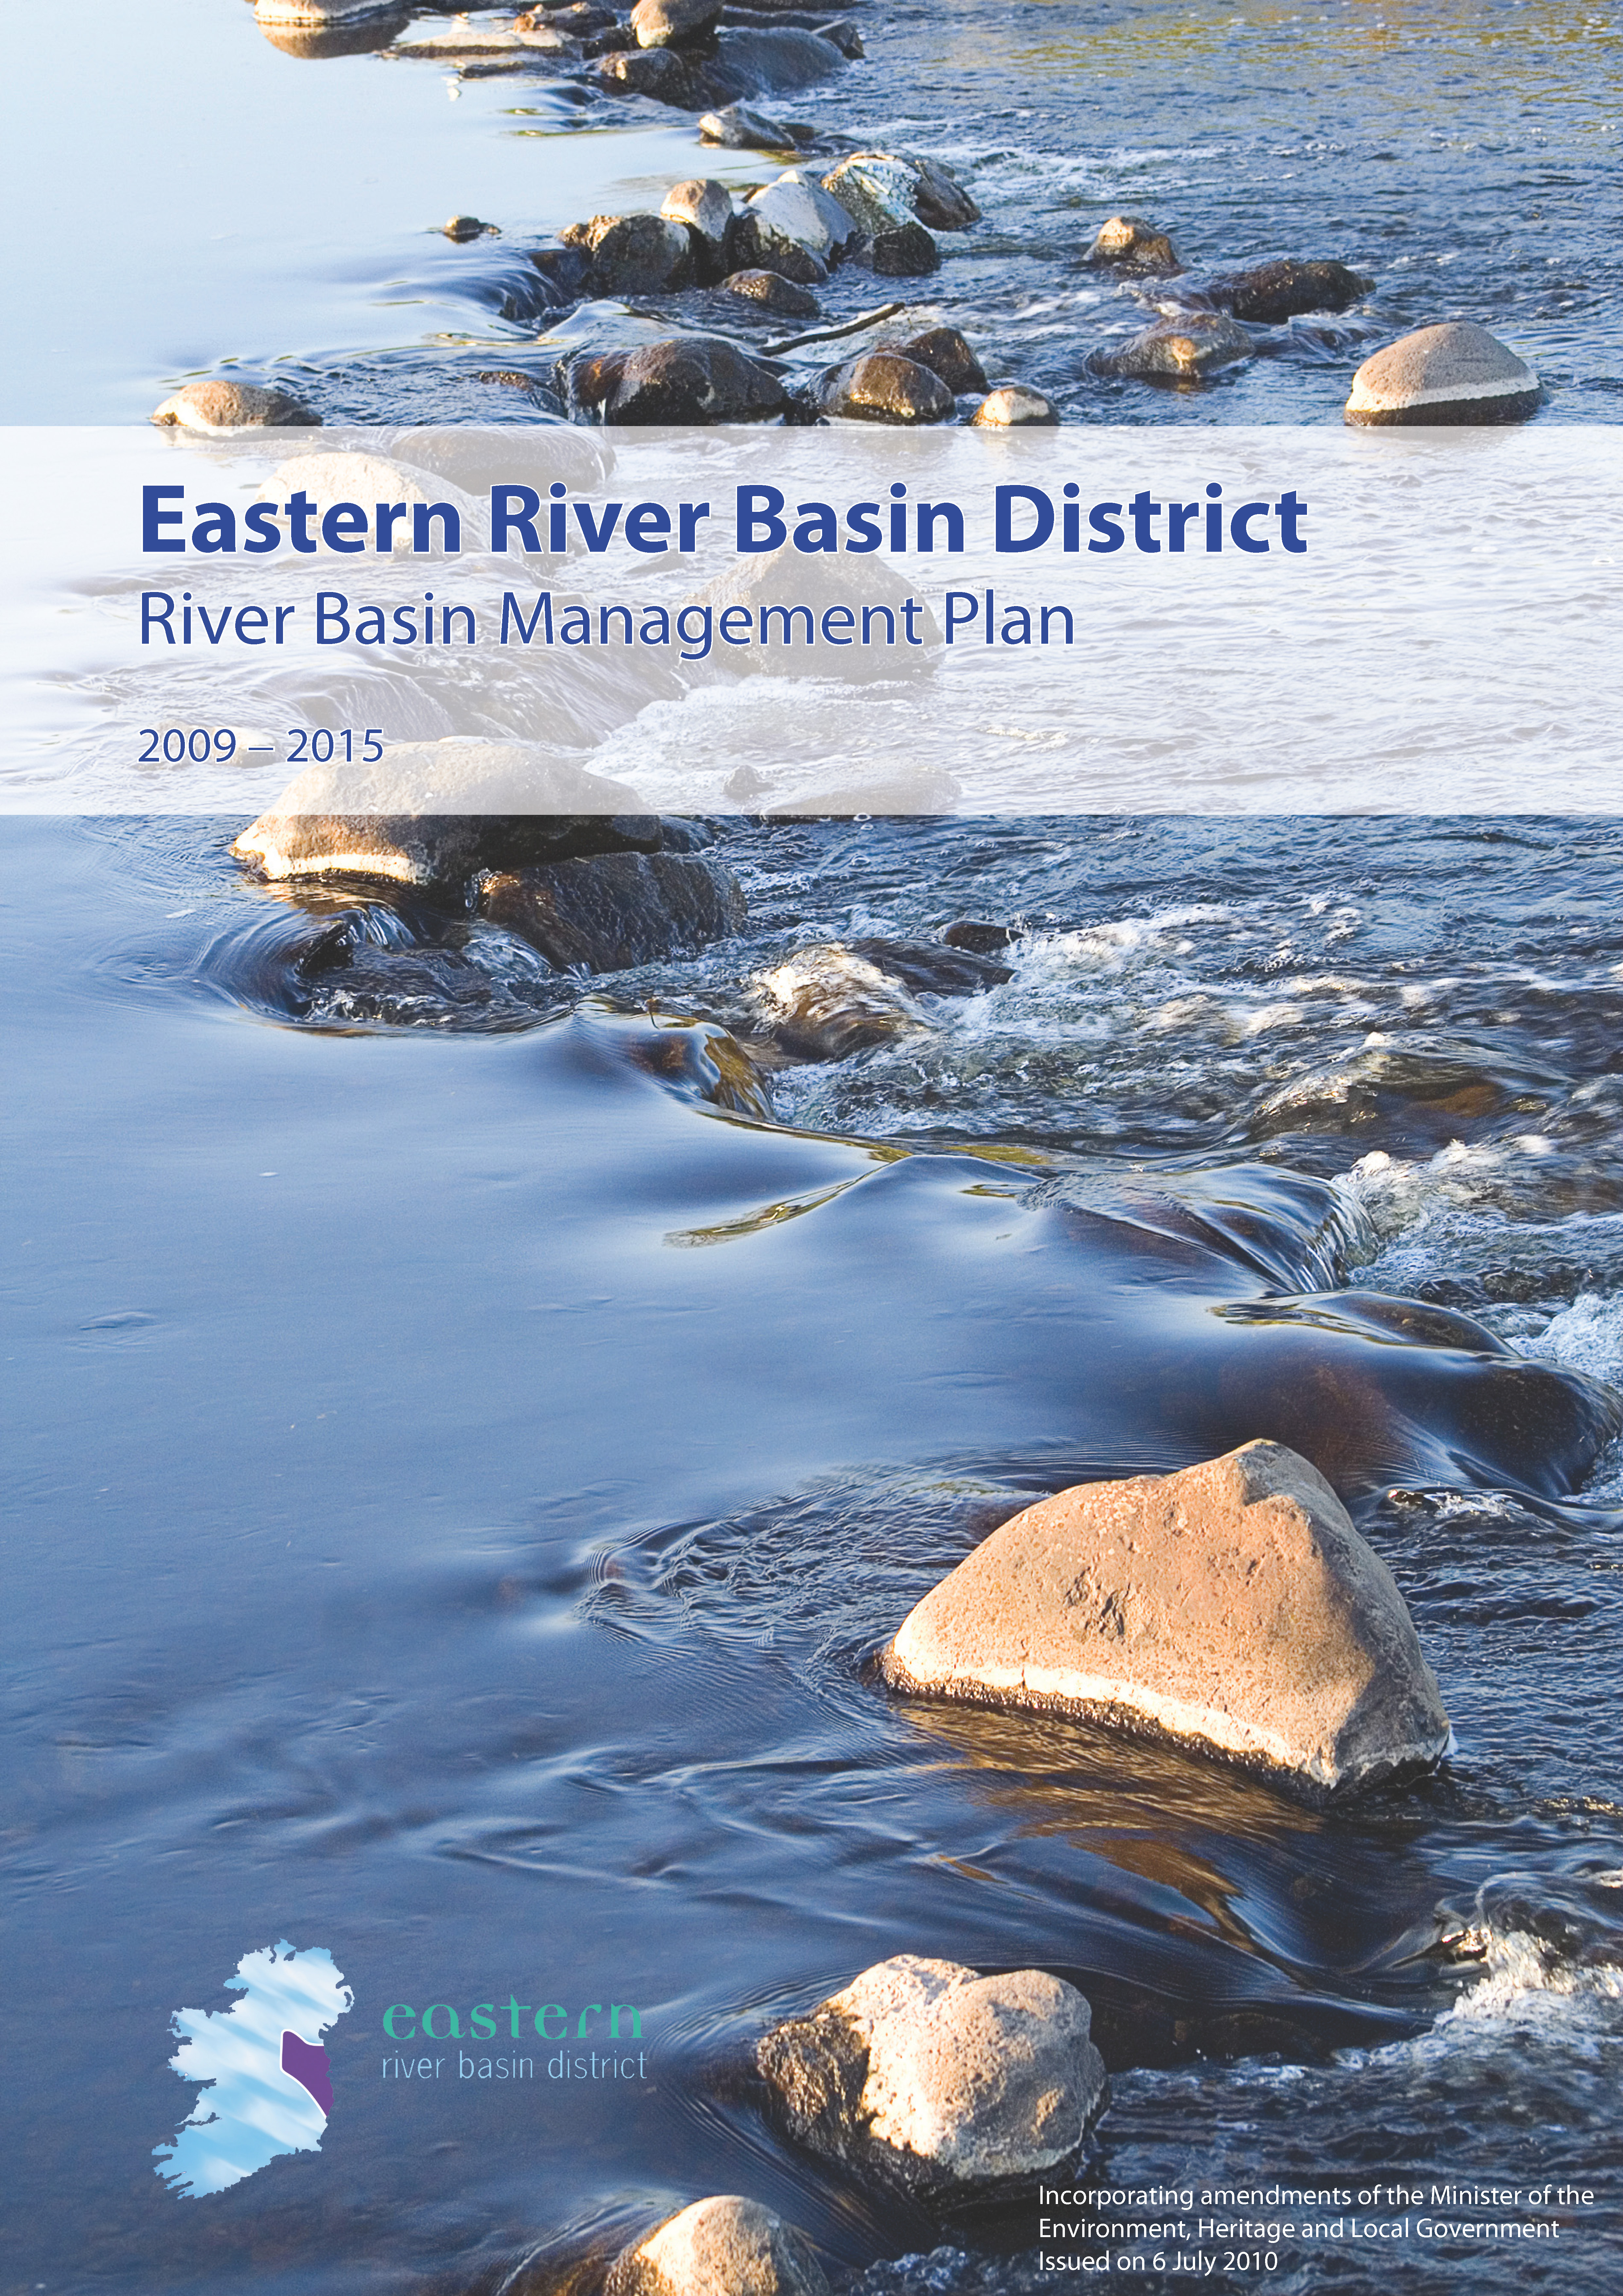 Cover from Eastern River Basin District River Basin Management Plan 6 July 2010